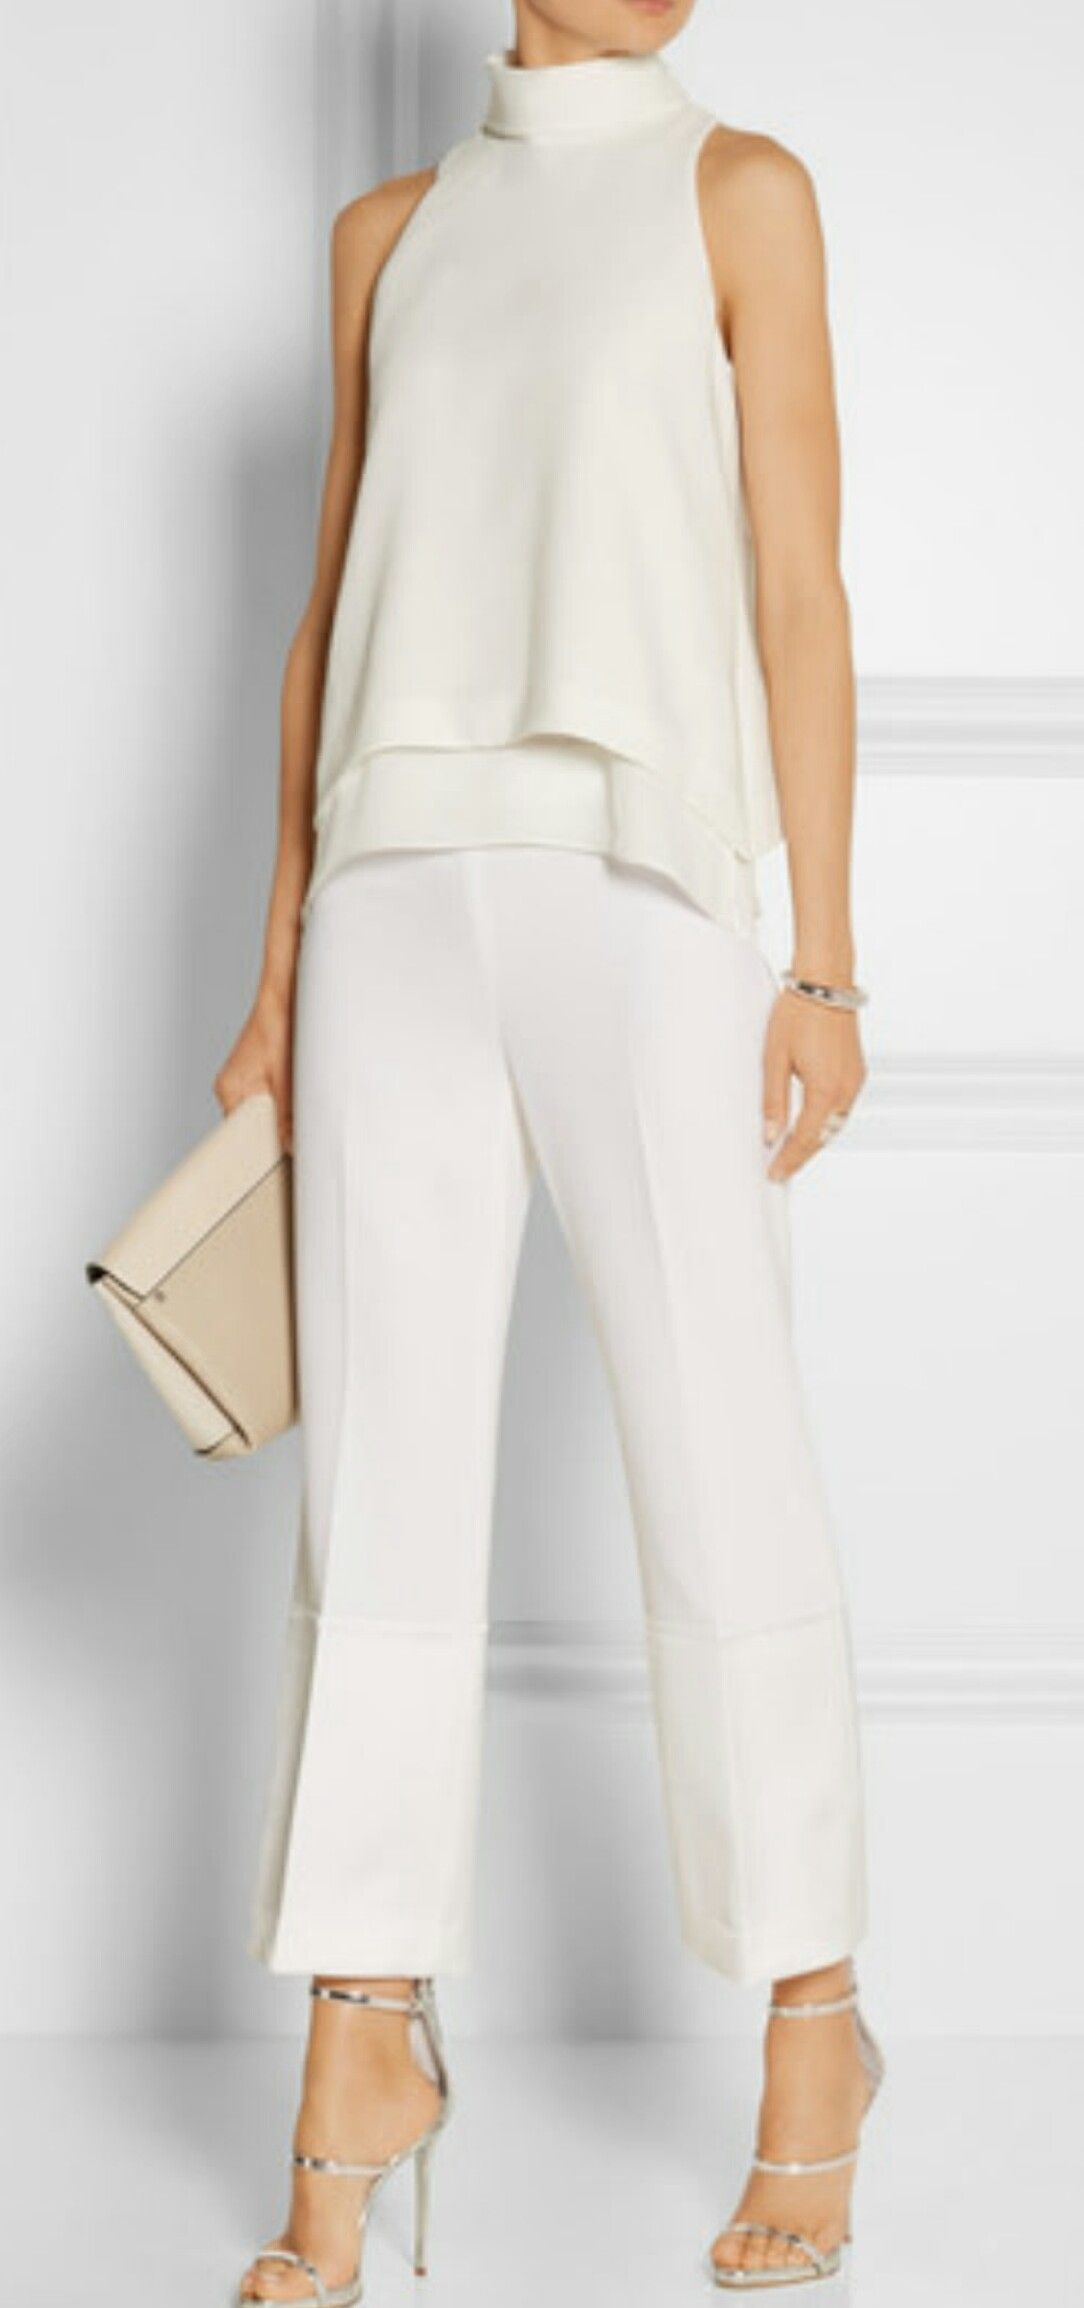 Elizabeth and James - Everly silk chiffon-trimmed crepe top